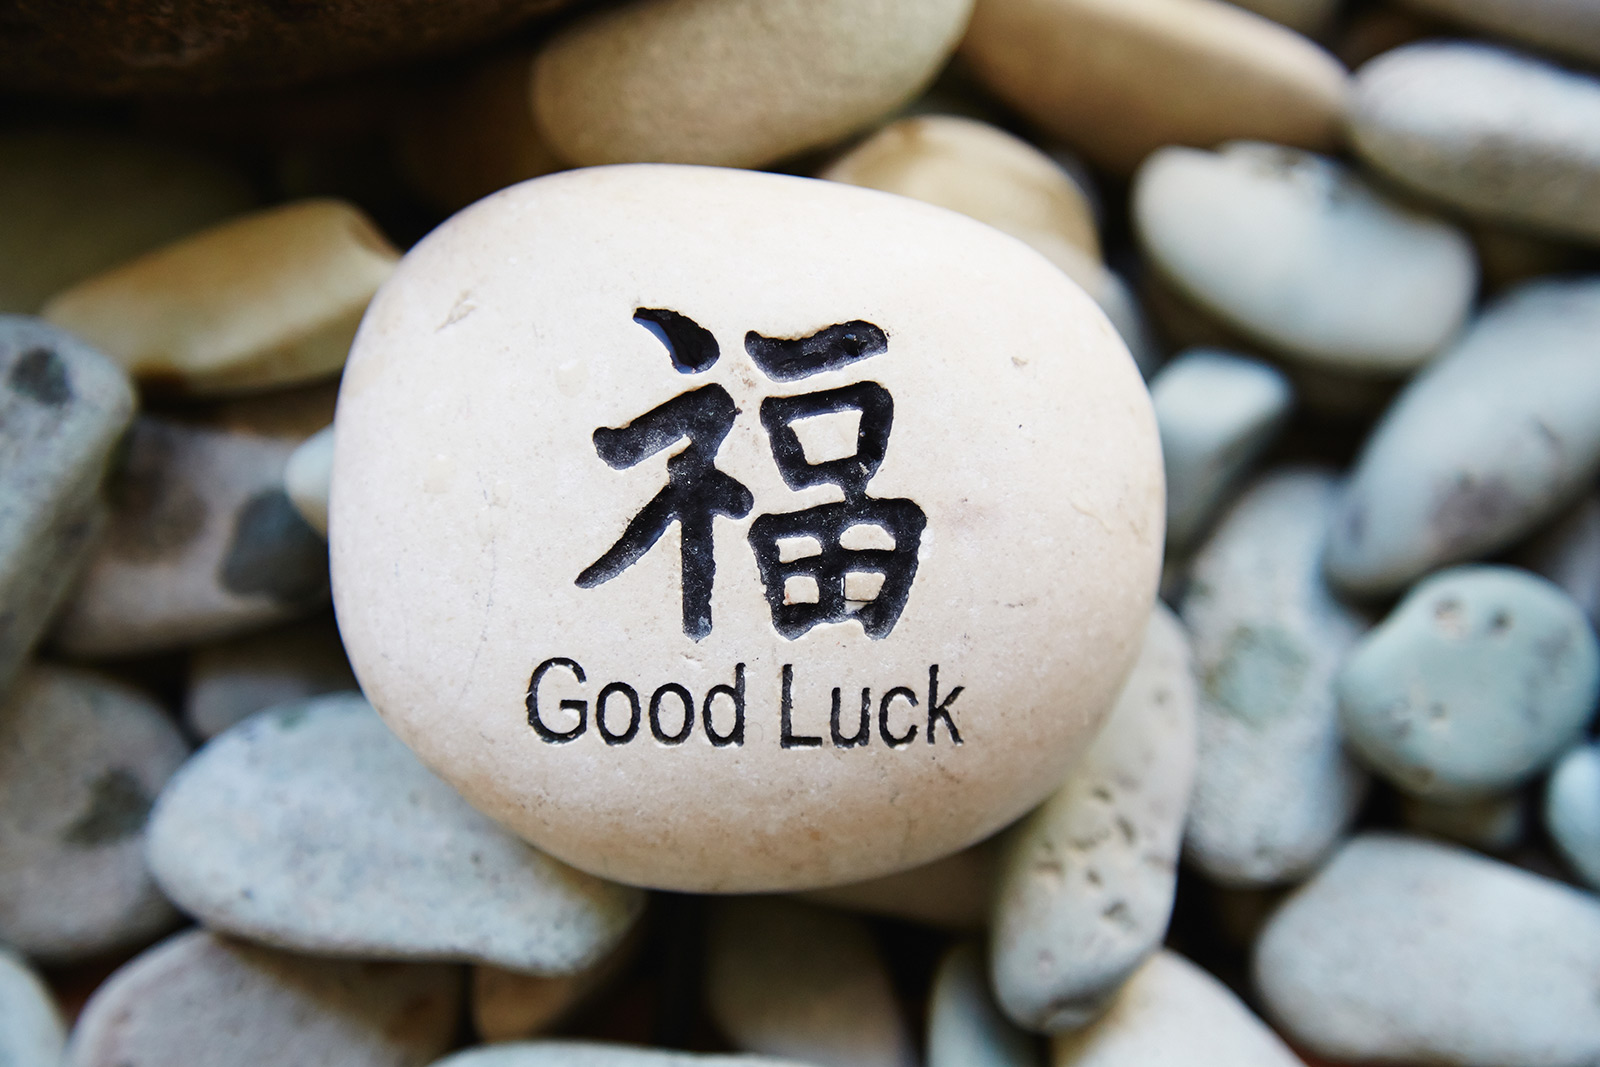 Easy Ways To Make Good Luck Come Your Way